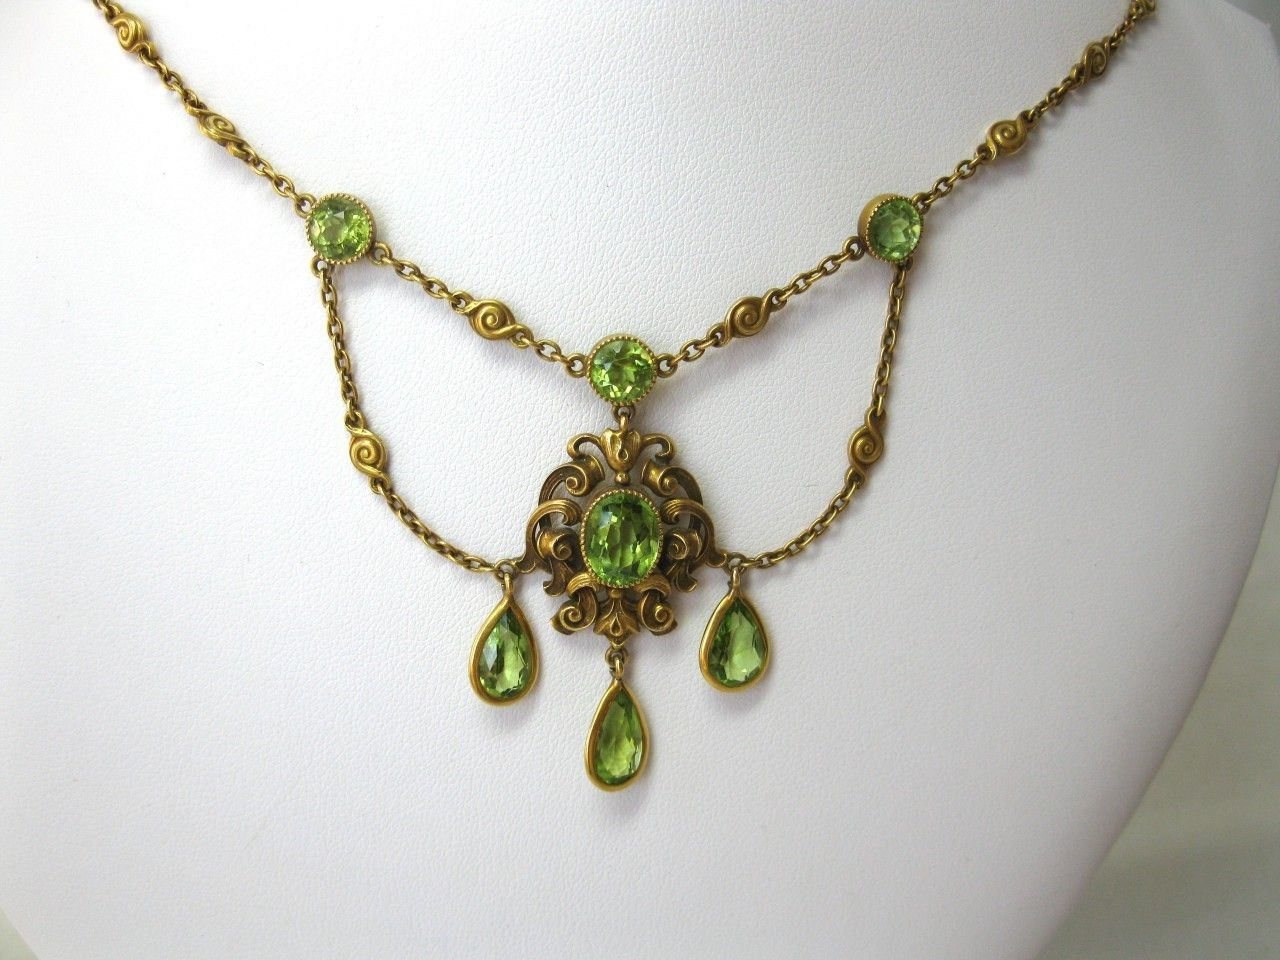 Peridot Art Nouveau Engament Wedding Jewelry Necklace Victorian 14k Gold C1910 | eBay